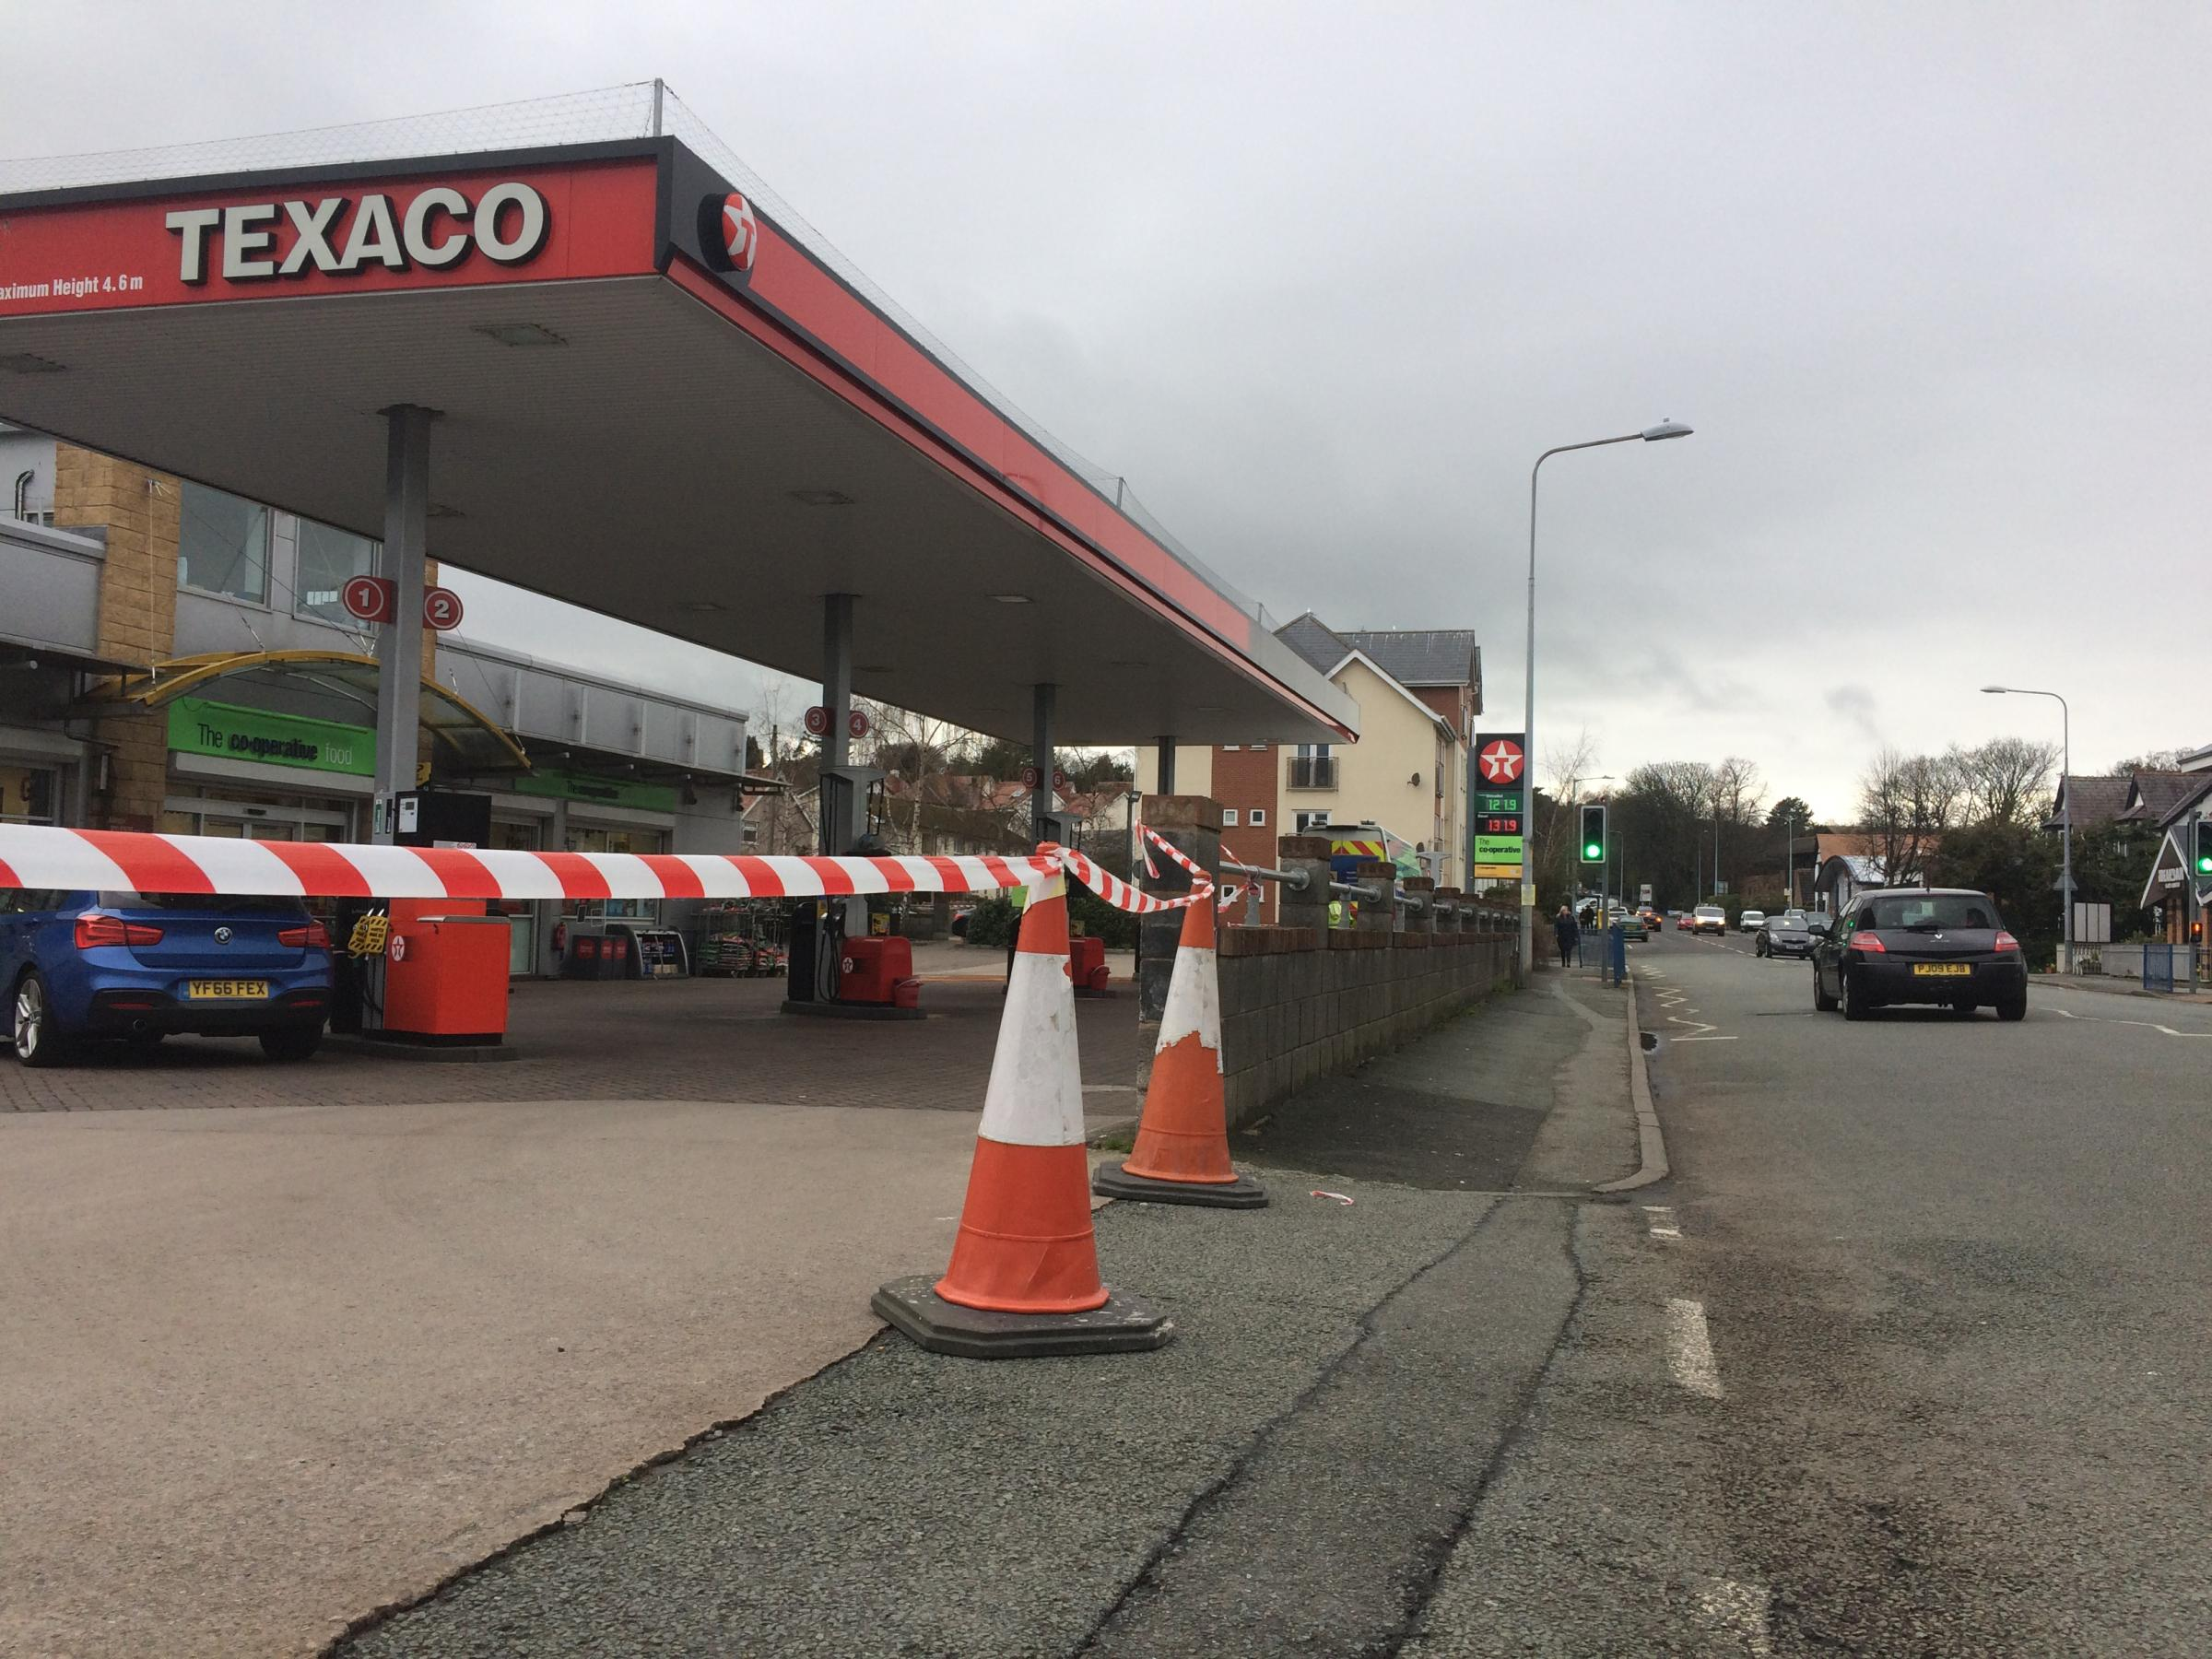 The Co-Op petrol station in Old Colwyn. Picture: Kerry Roberts